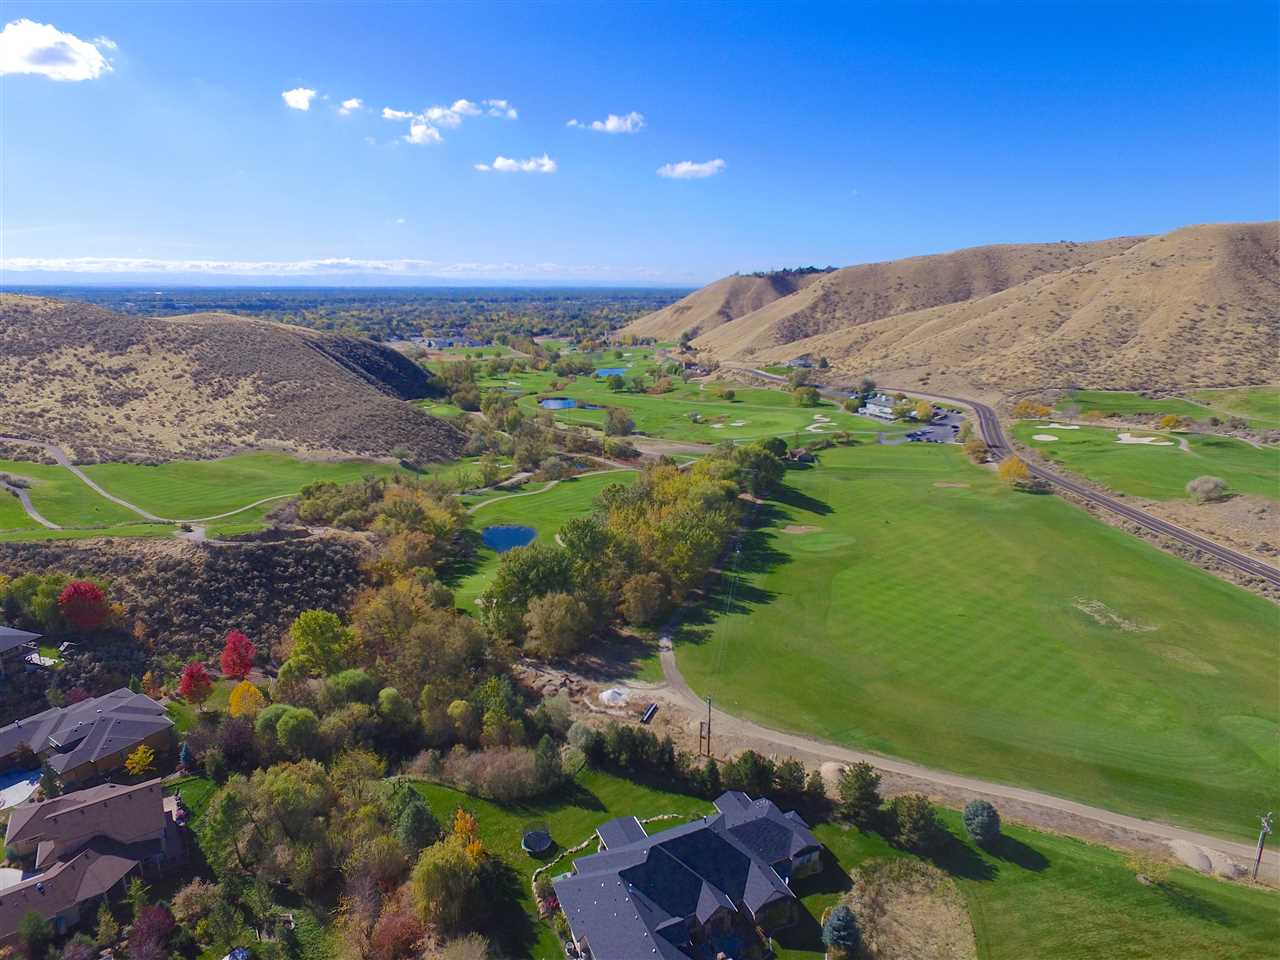 Lot 8 Block 4 Eyrie Canyon #9, Boise, ID 83703